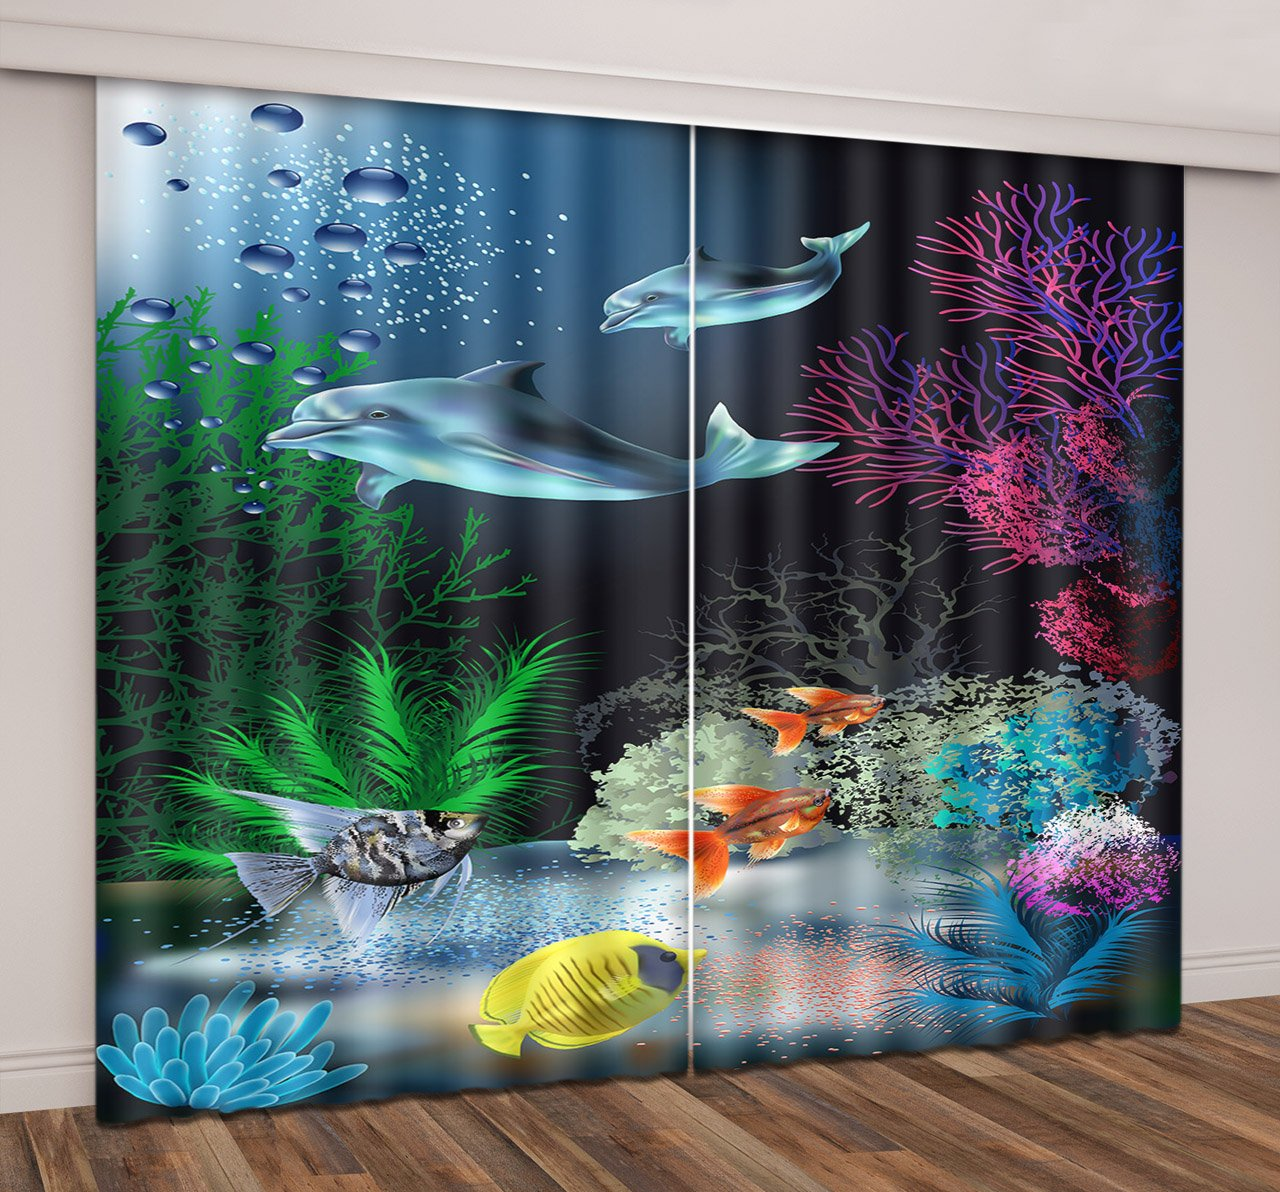 Ocean Decor 3D Window Curtains By LB,Underwater Coral Reef Polyps Algae Dolphins Window Treatment Curtains Living Room Bedroom Window Drapes 2 Panels Set,104W x 96L Inches